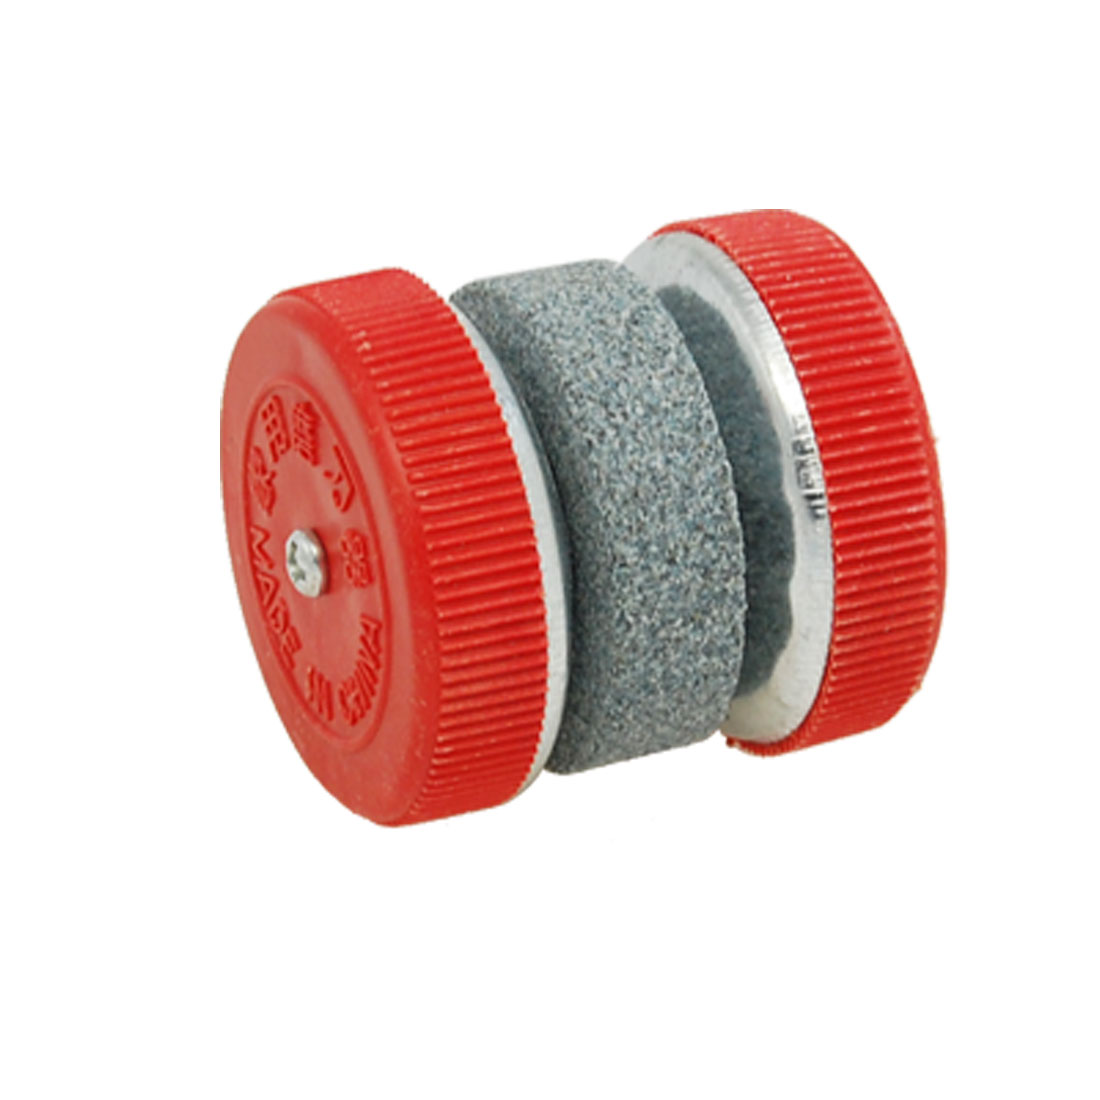 Professional Red Grinding Wheels cutter Sharpener Abrader